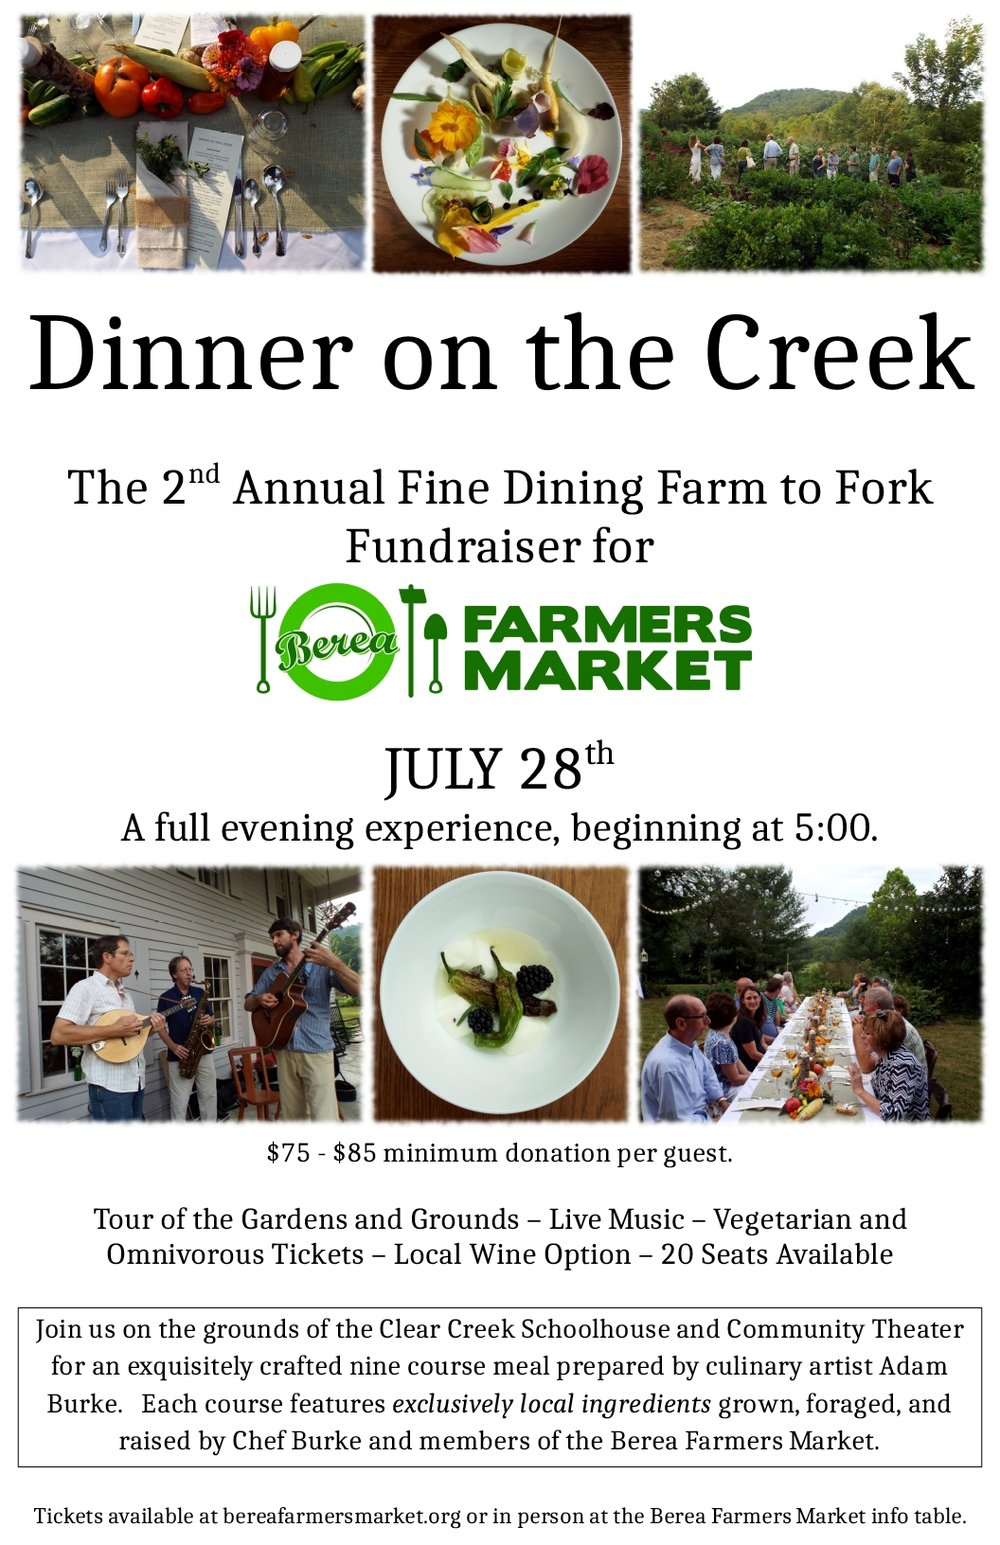 bfm dinner on the creek flyer 2018 jpg.jpg